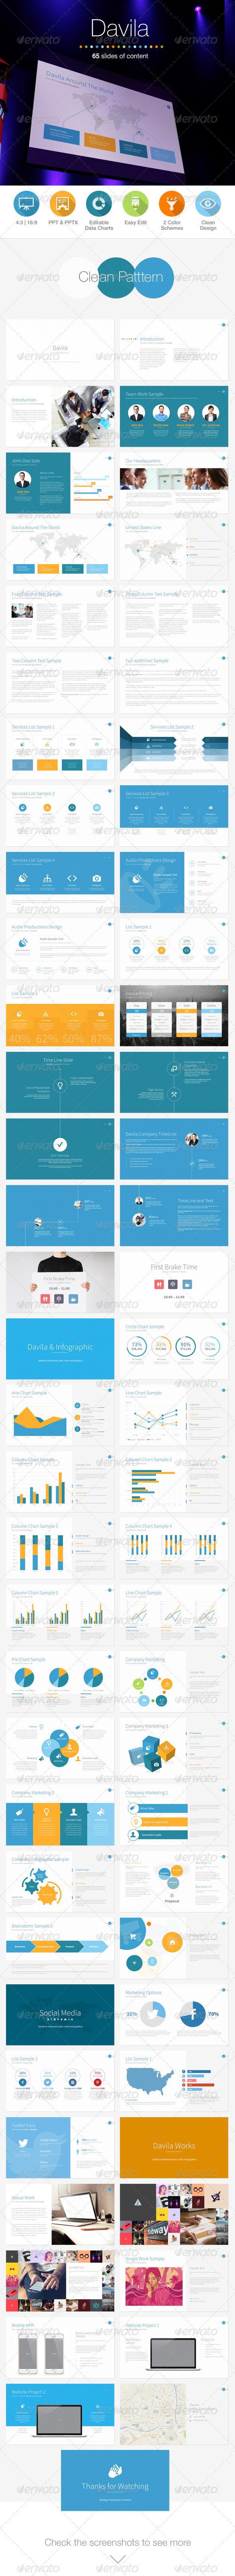 GraphicRiver Davila PowerPoint Presentation Template 7782565